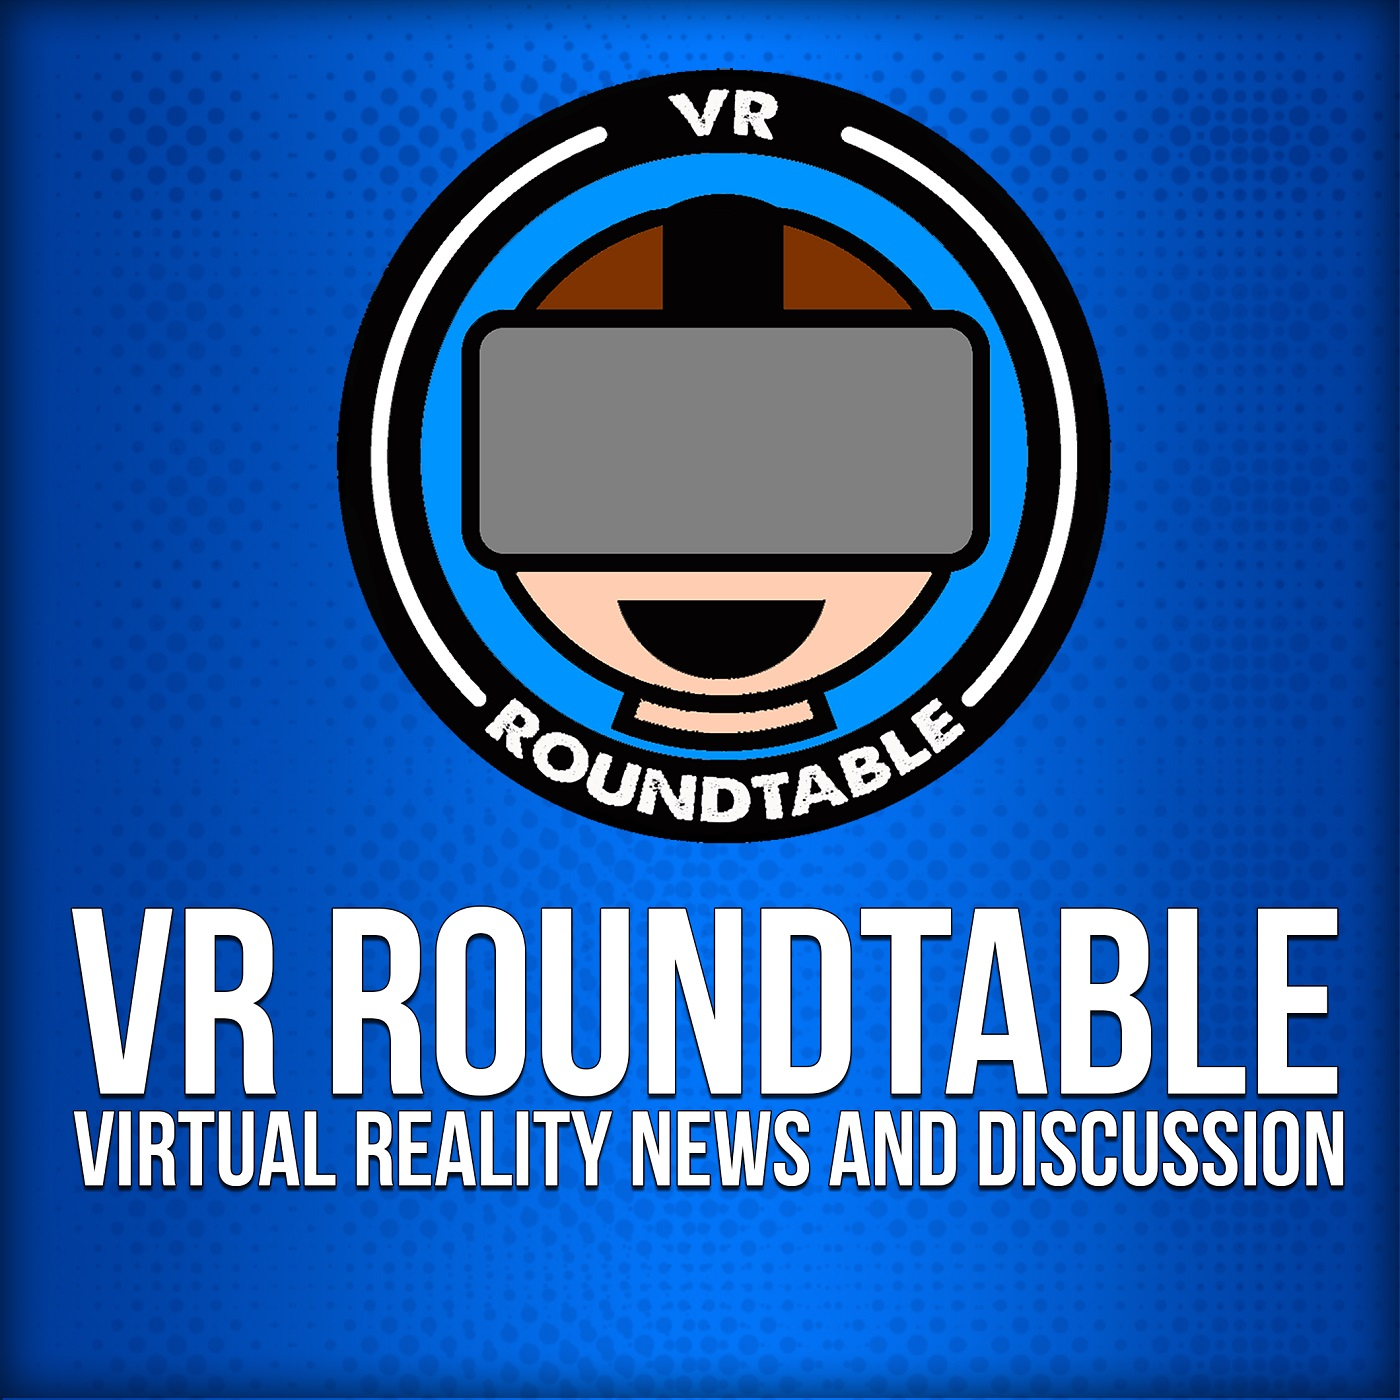 VR Roundtable - Virtual Reality Podcast on Apple Podcasts